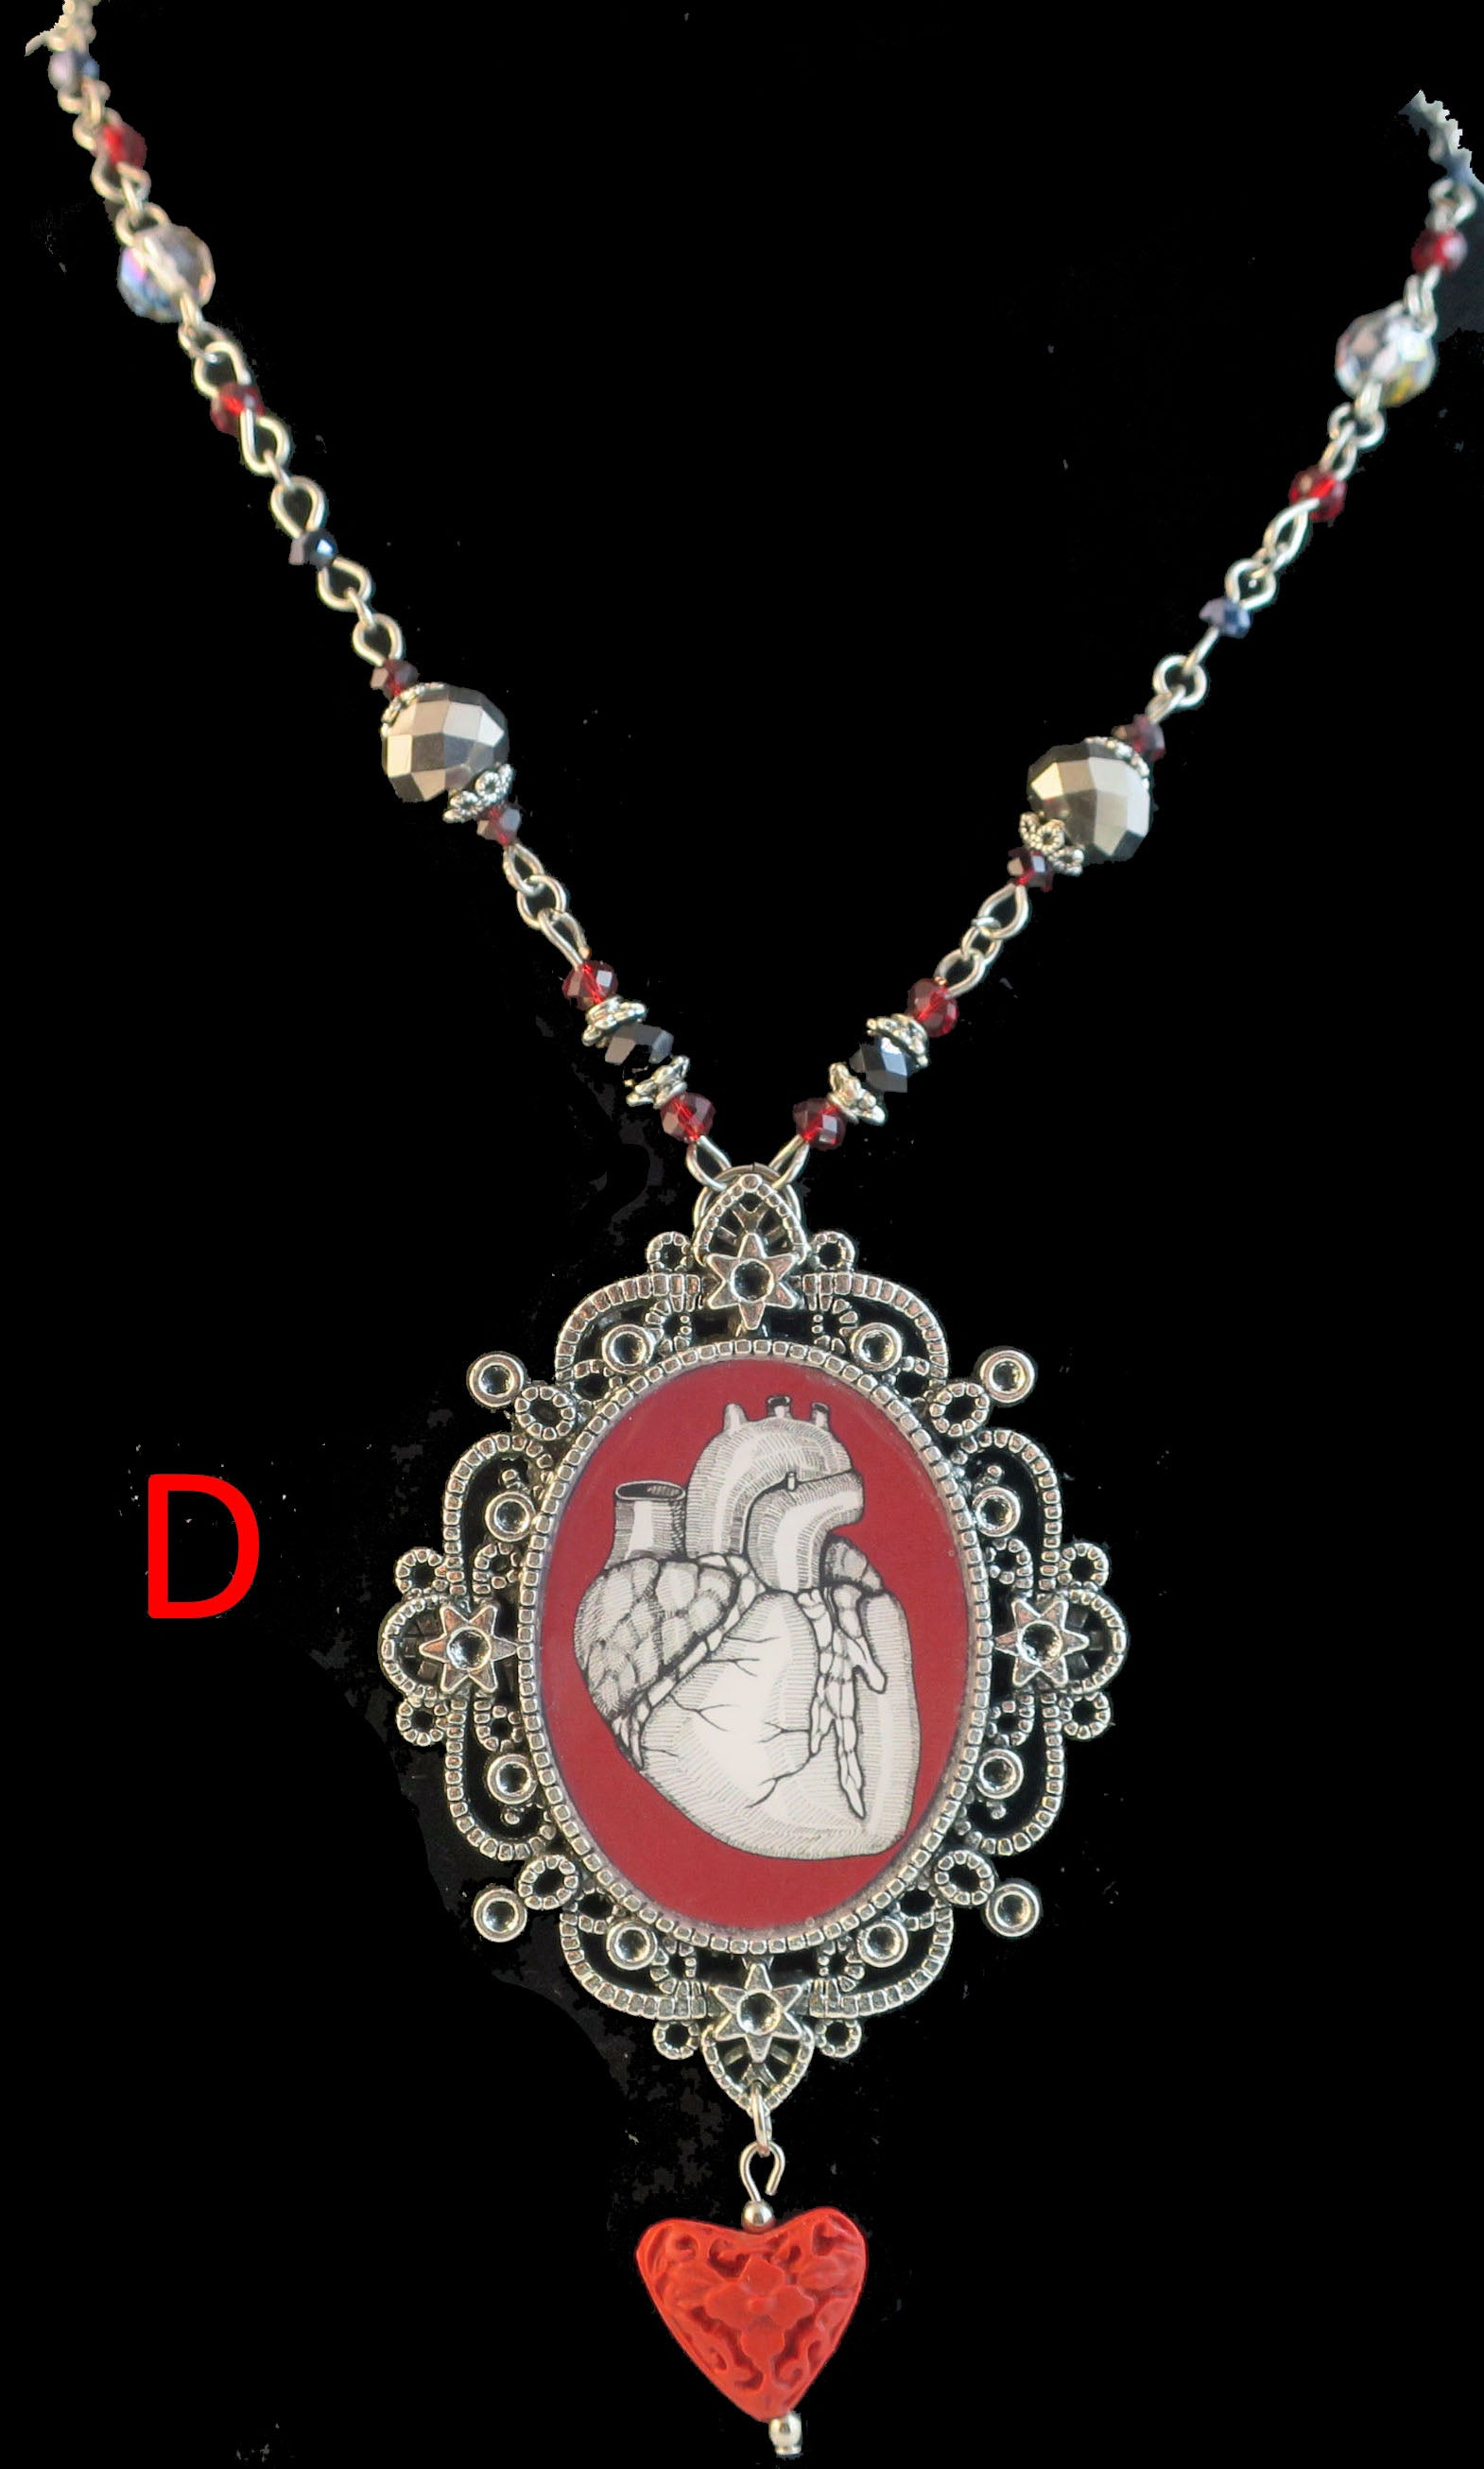 human heart pendant necklace goth